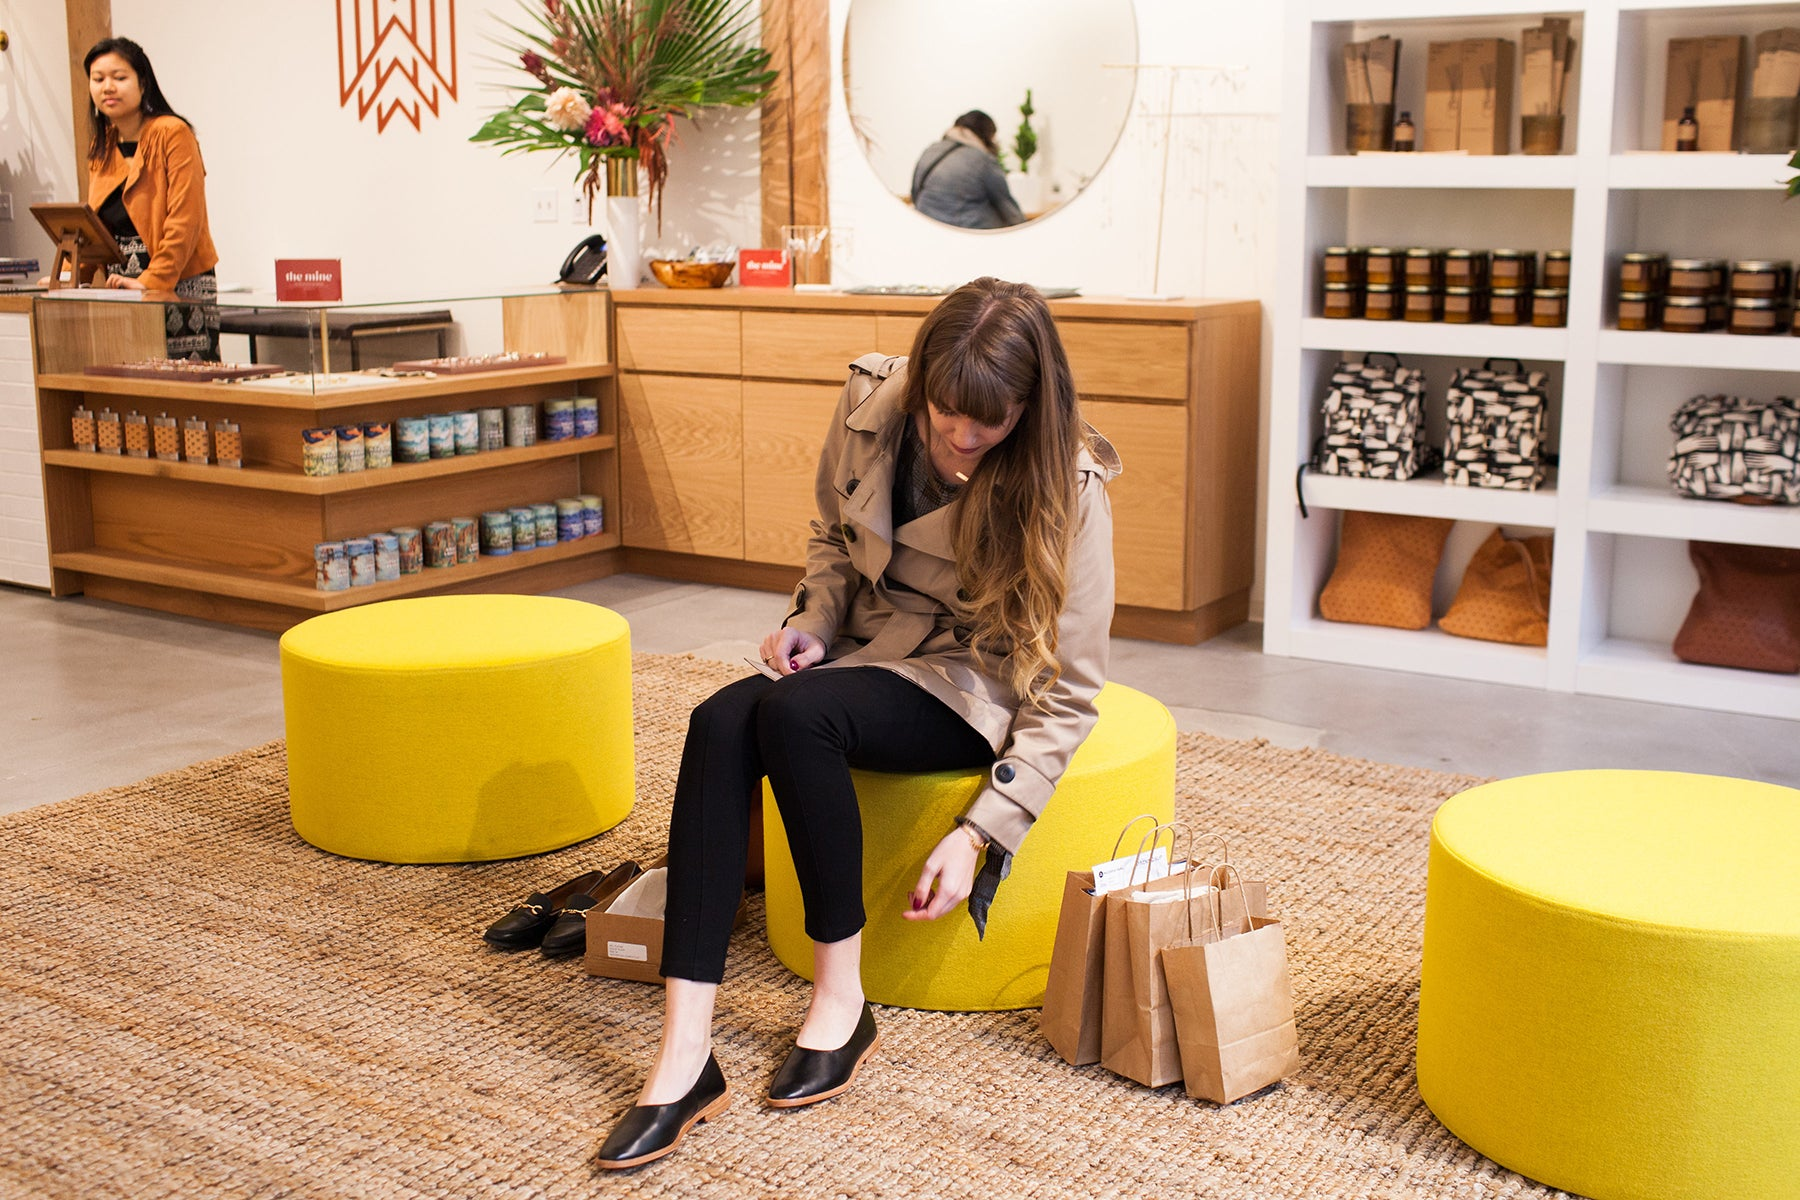 Image of a store interior. A woman in the foreground sits on a round yellow stool trying on shoes